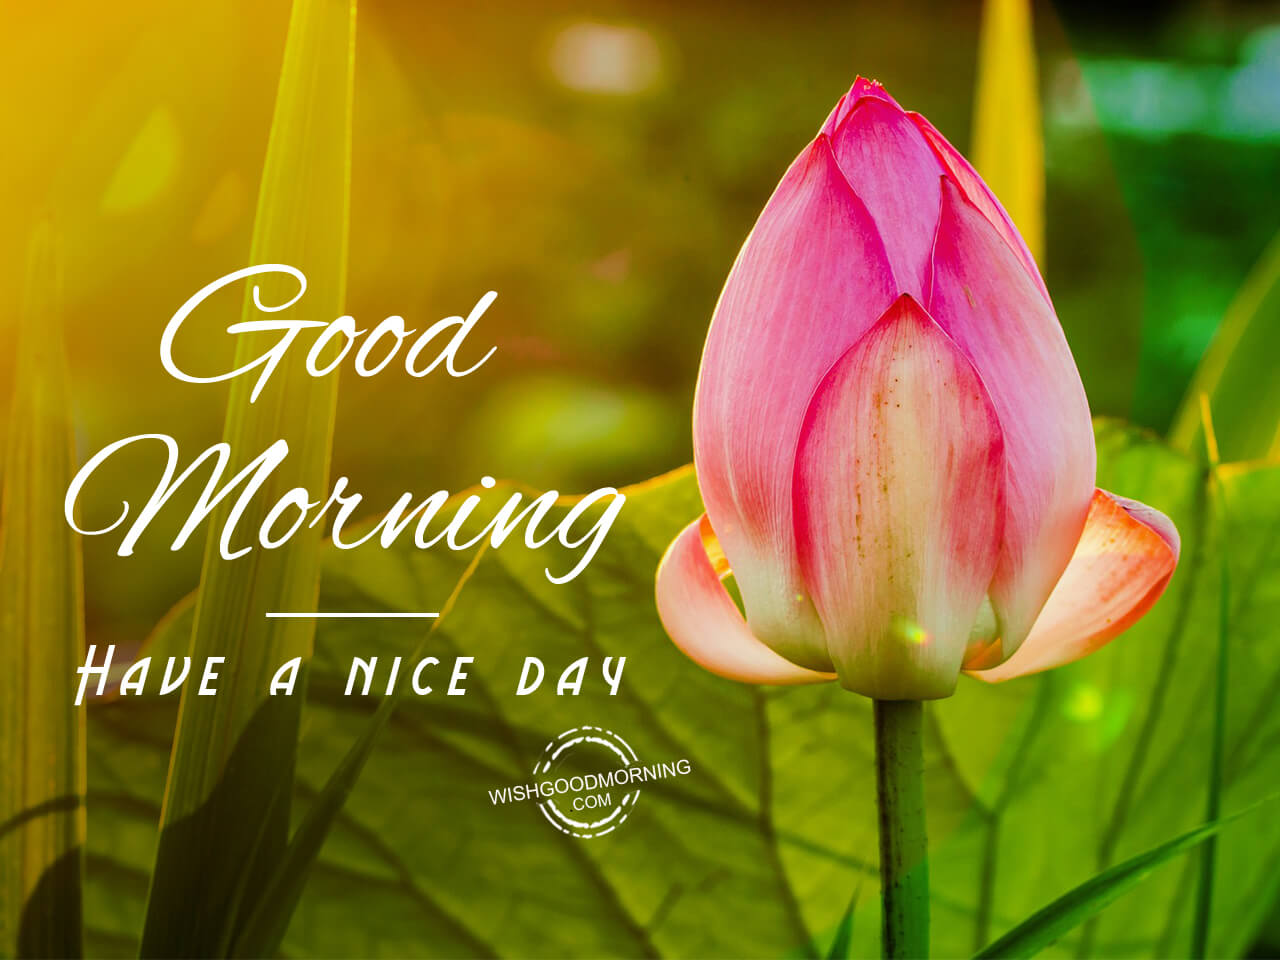 Good Morning Have A Nice Day Good Morning Pictures Wishgoodmorning Com